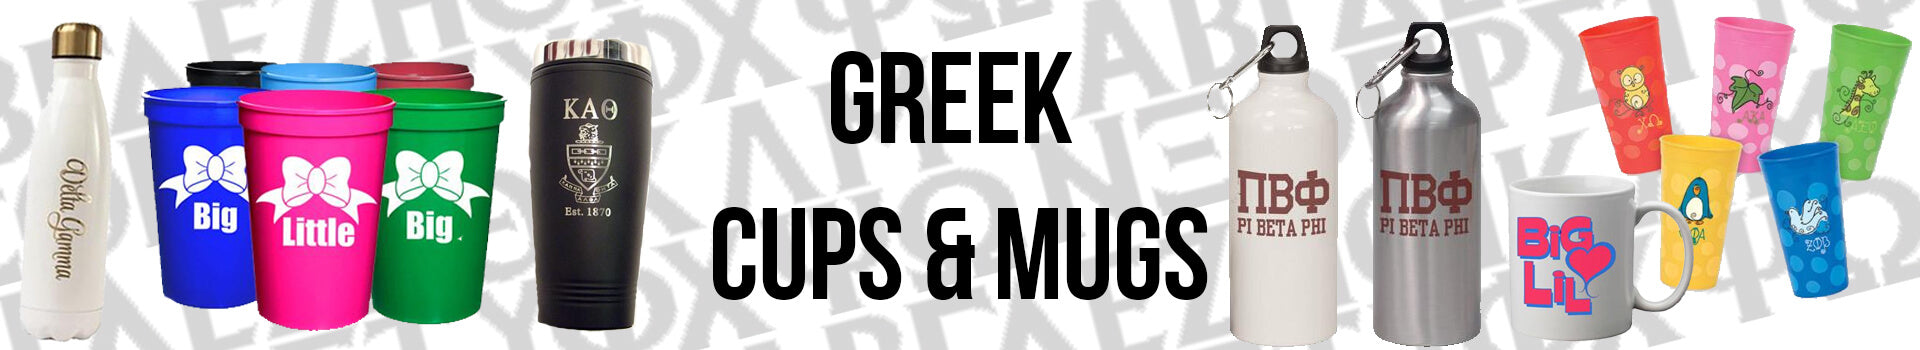 Custom Greek Fraternity and Sorority Cups, Mugs, Tumblers, and more!